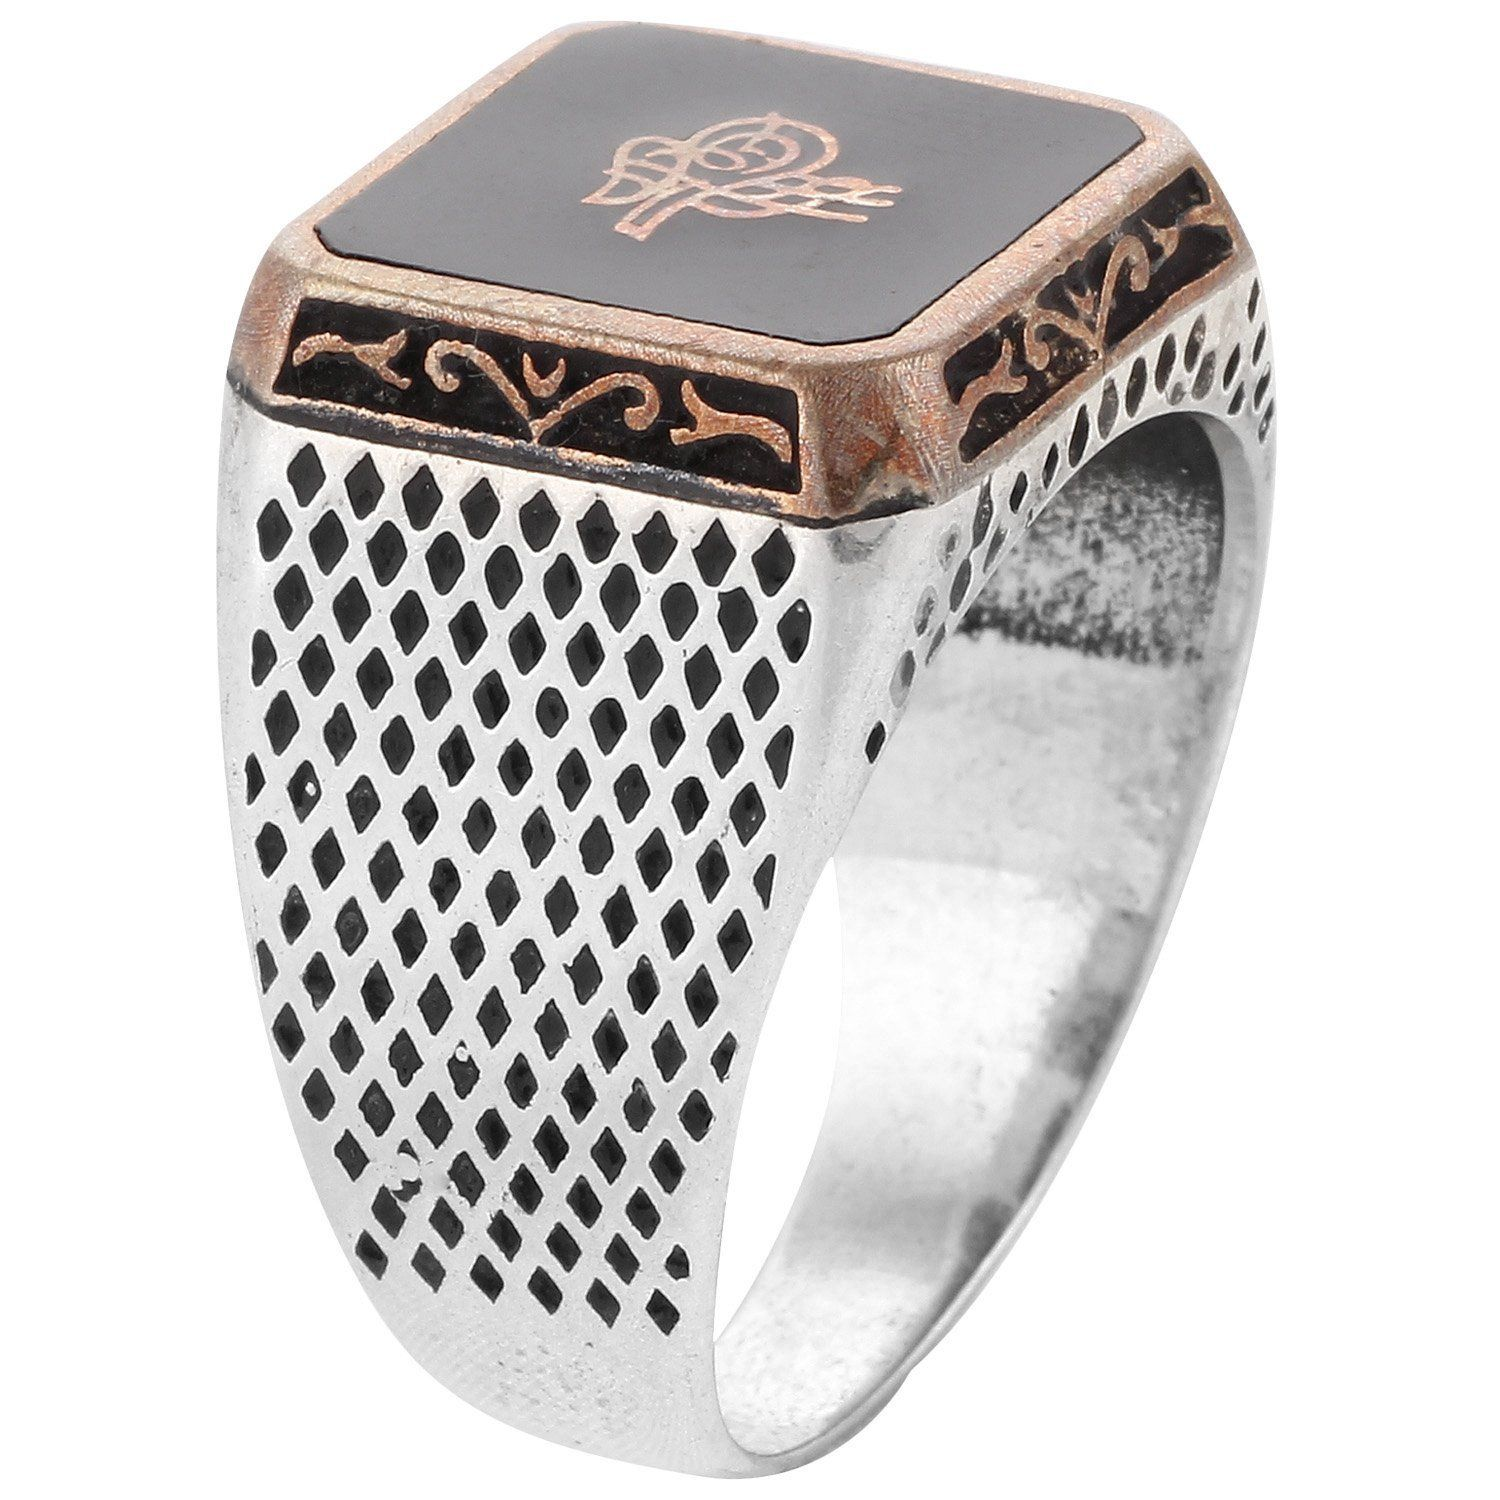 Buy Define Jewellery Silver ring for Men DFR0069 line at Low